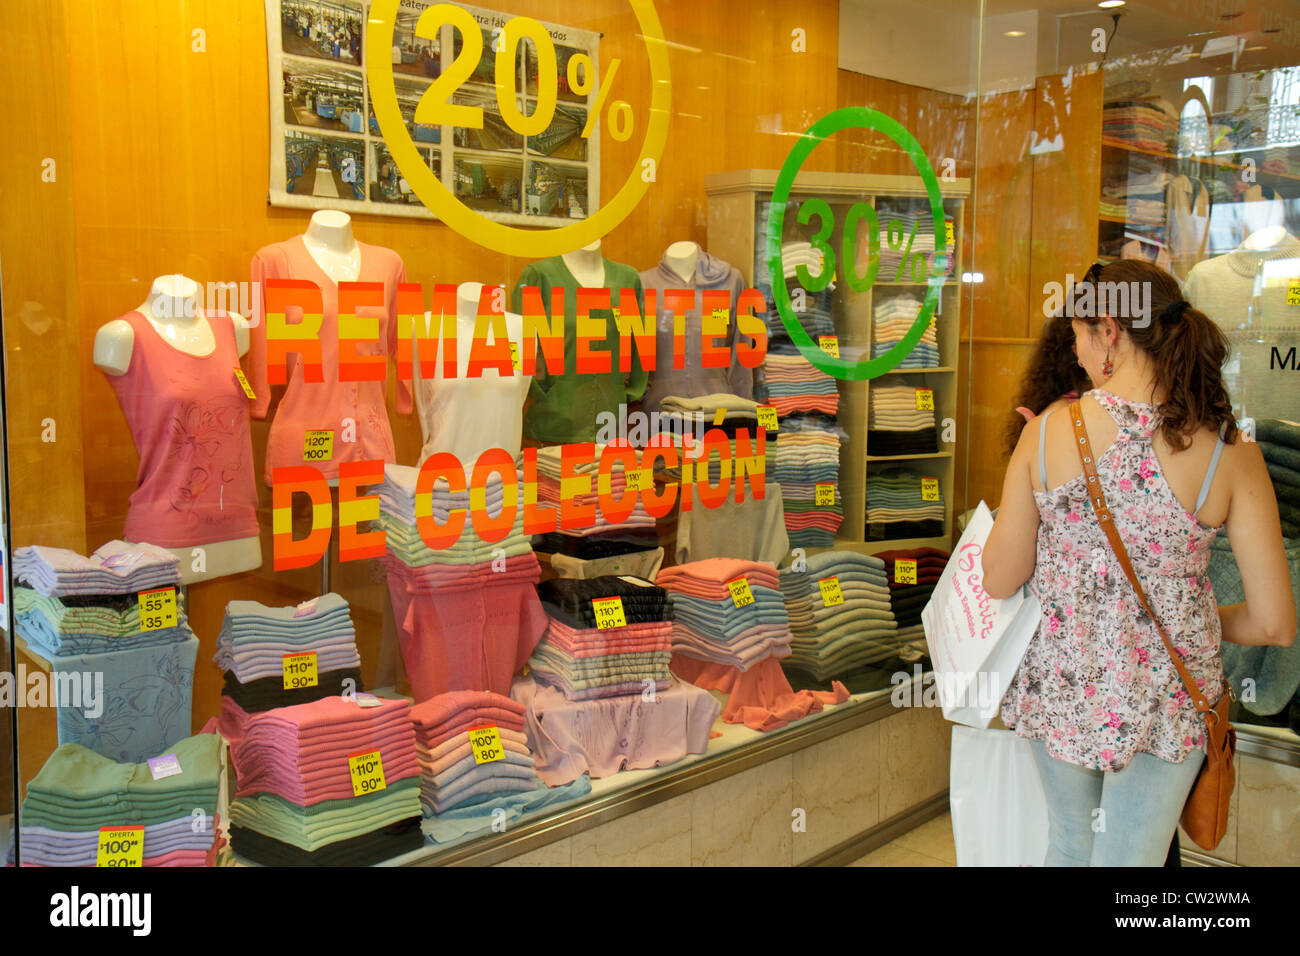 Cw clothing store. Girls clothing stores